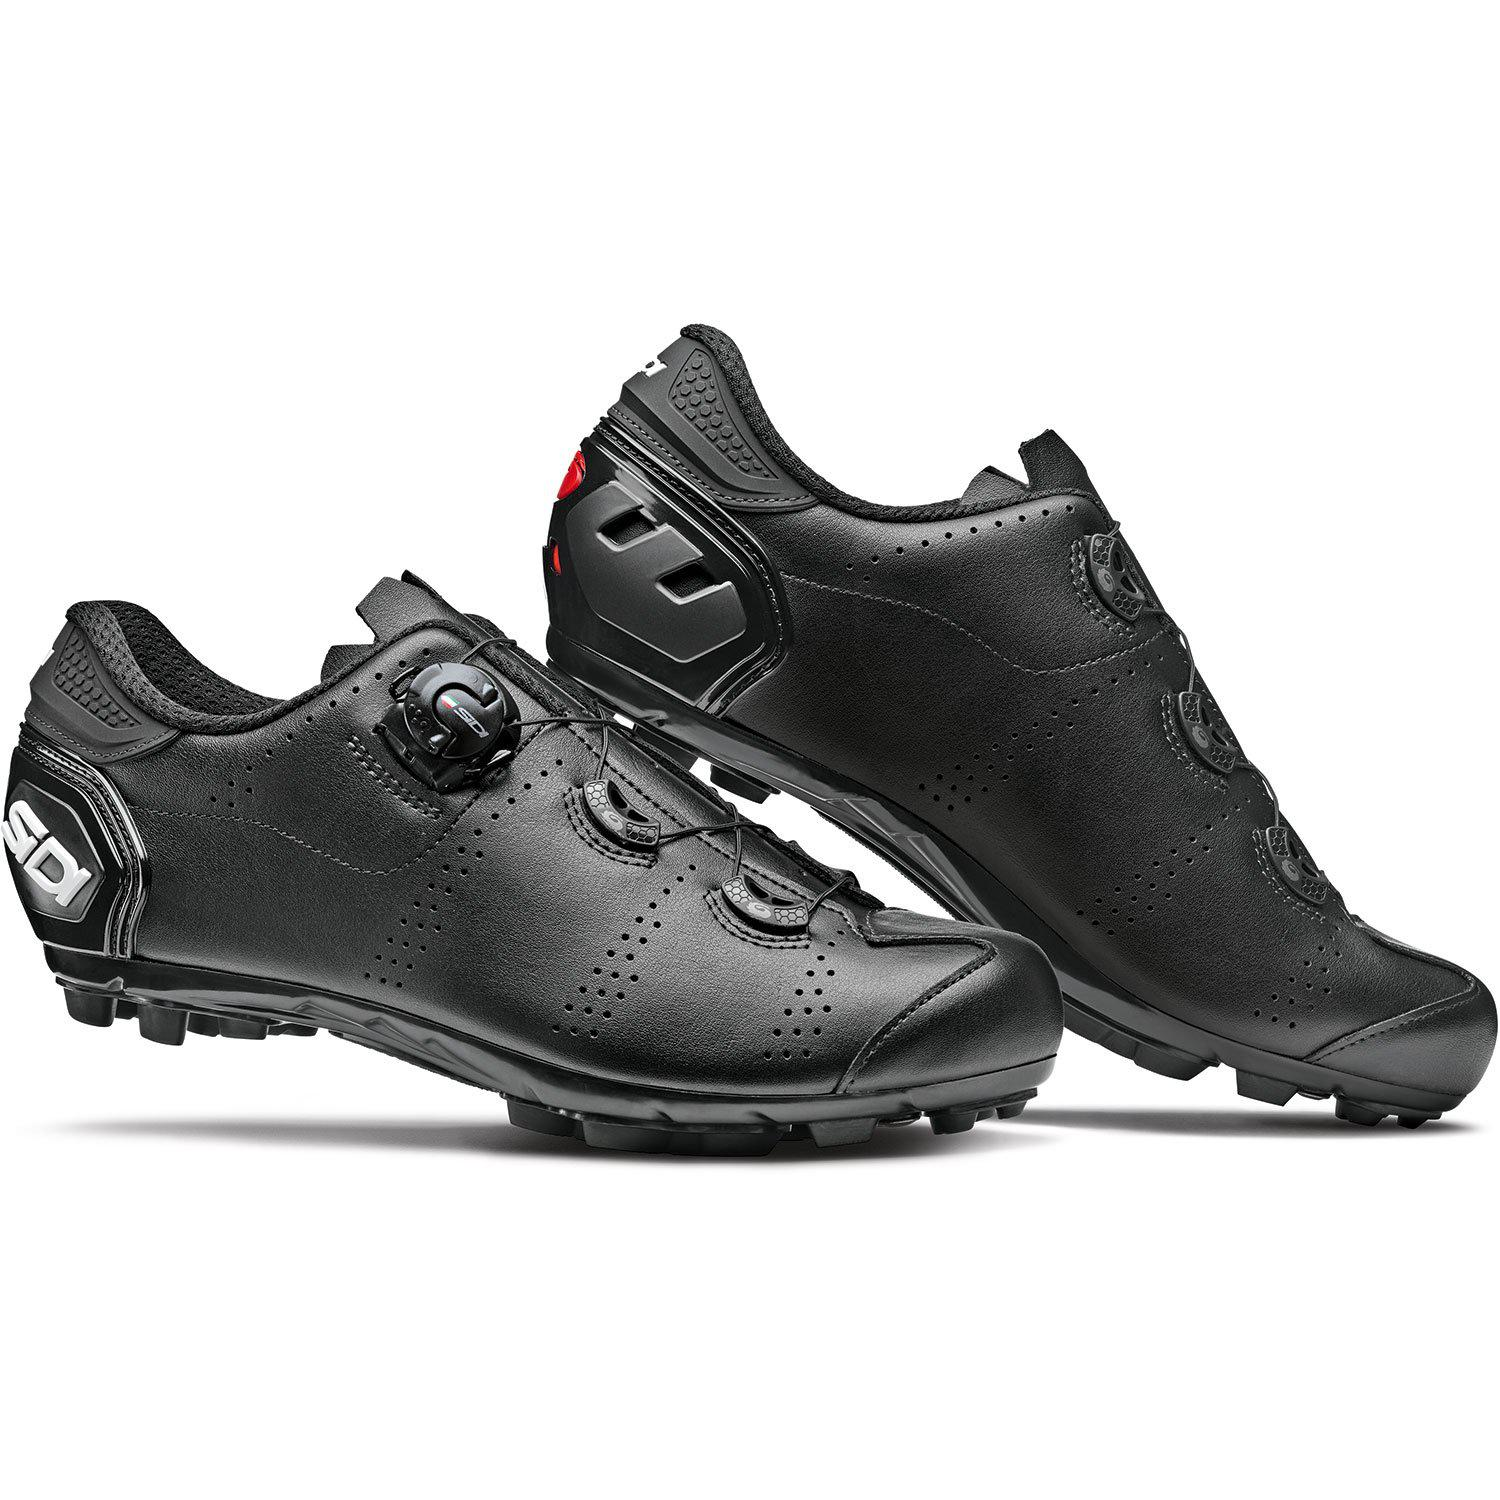 Sidi-Sidi Speed MTB Shoes-Black/Black-36-SISPEEDNENE36-saddleback-elite-performance-cycling